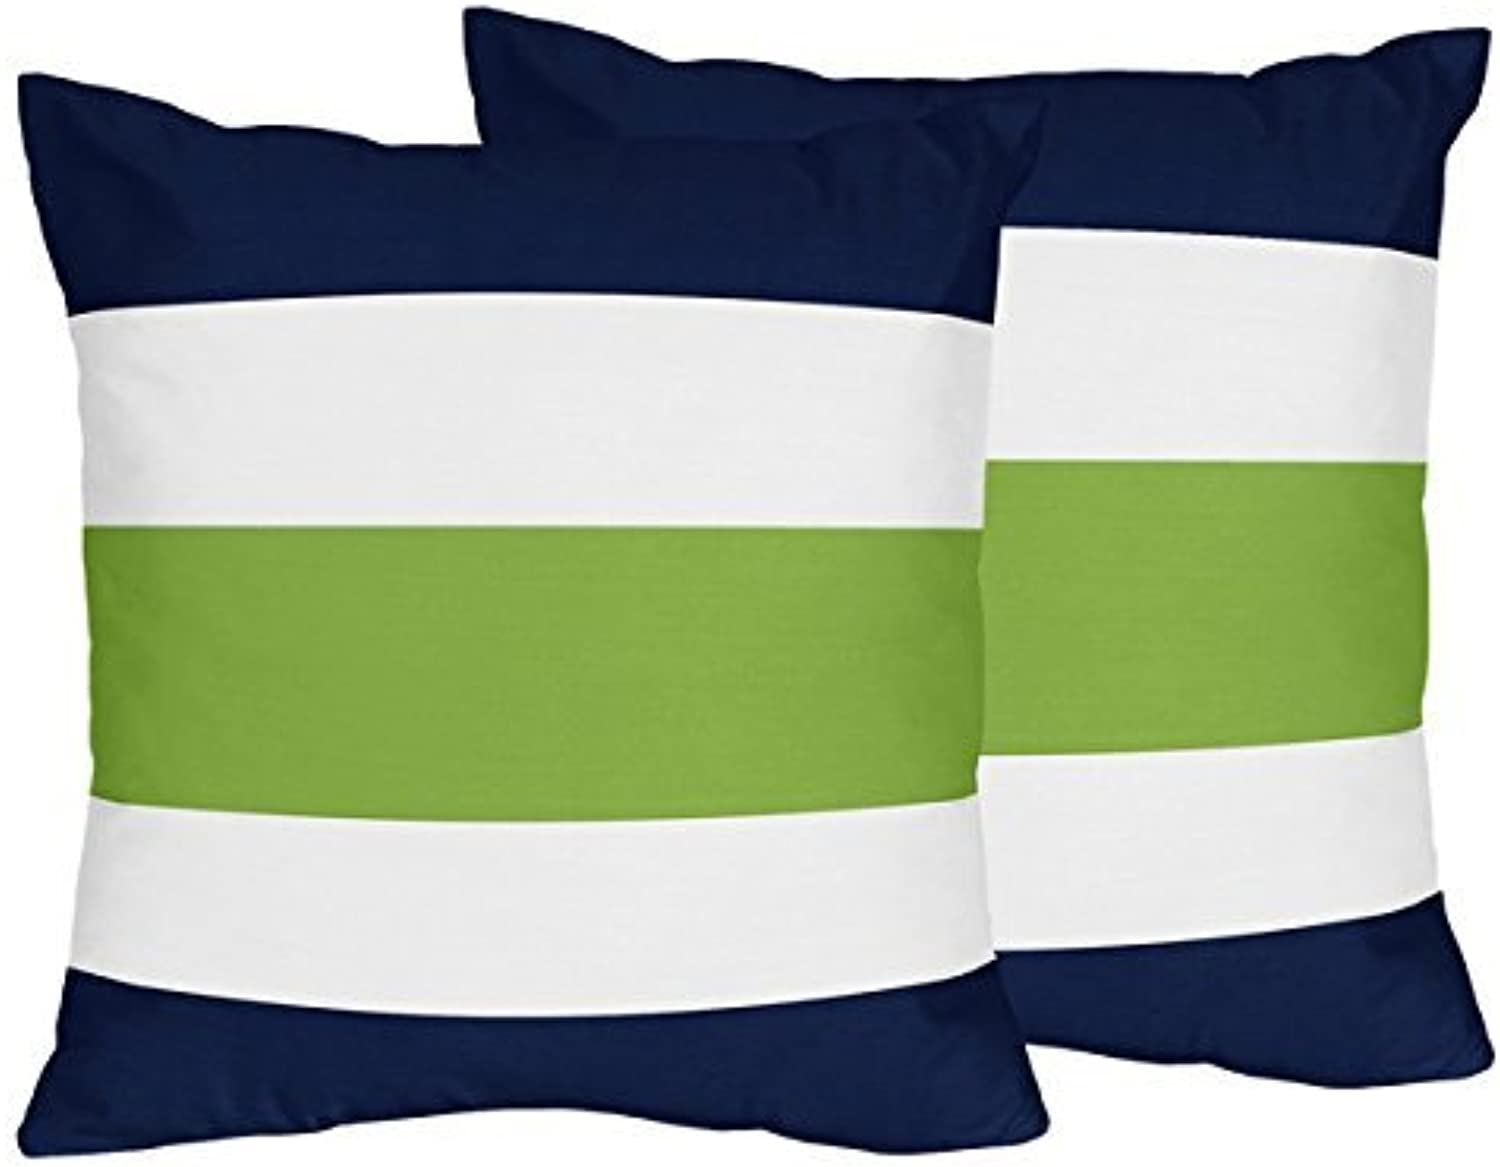 Sweet Jojo Designs 2-Piece Navy bluee, Lime Green and White Decorative Accent Throw Pillows for Stripe Collection